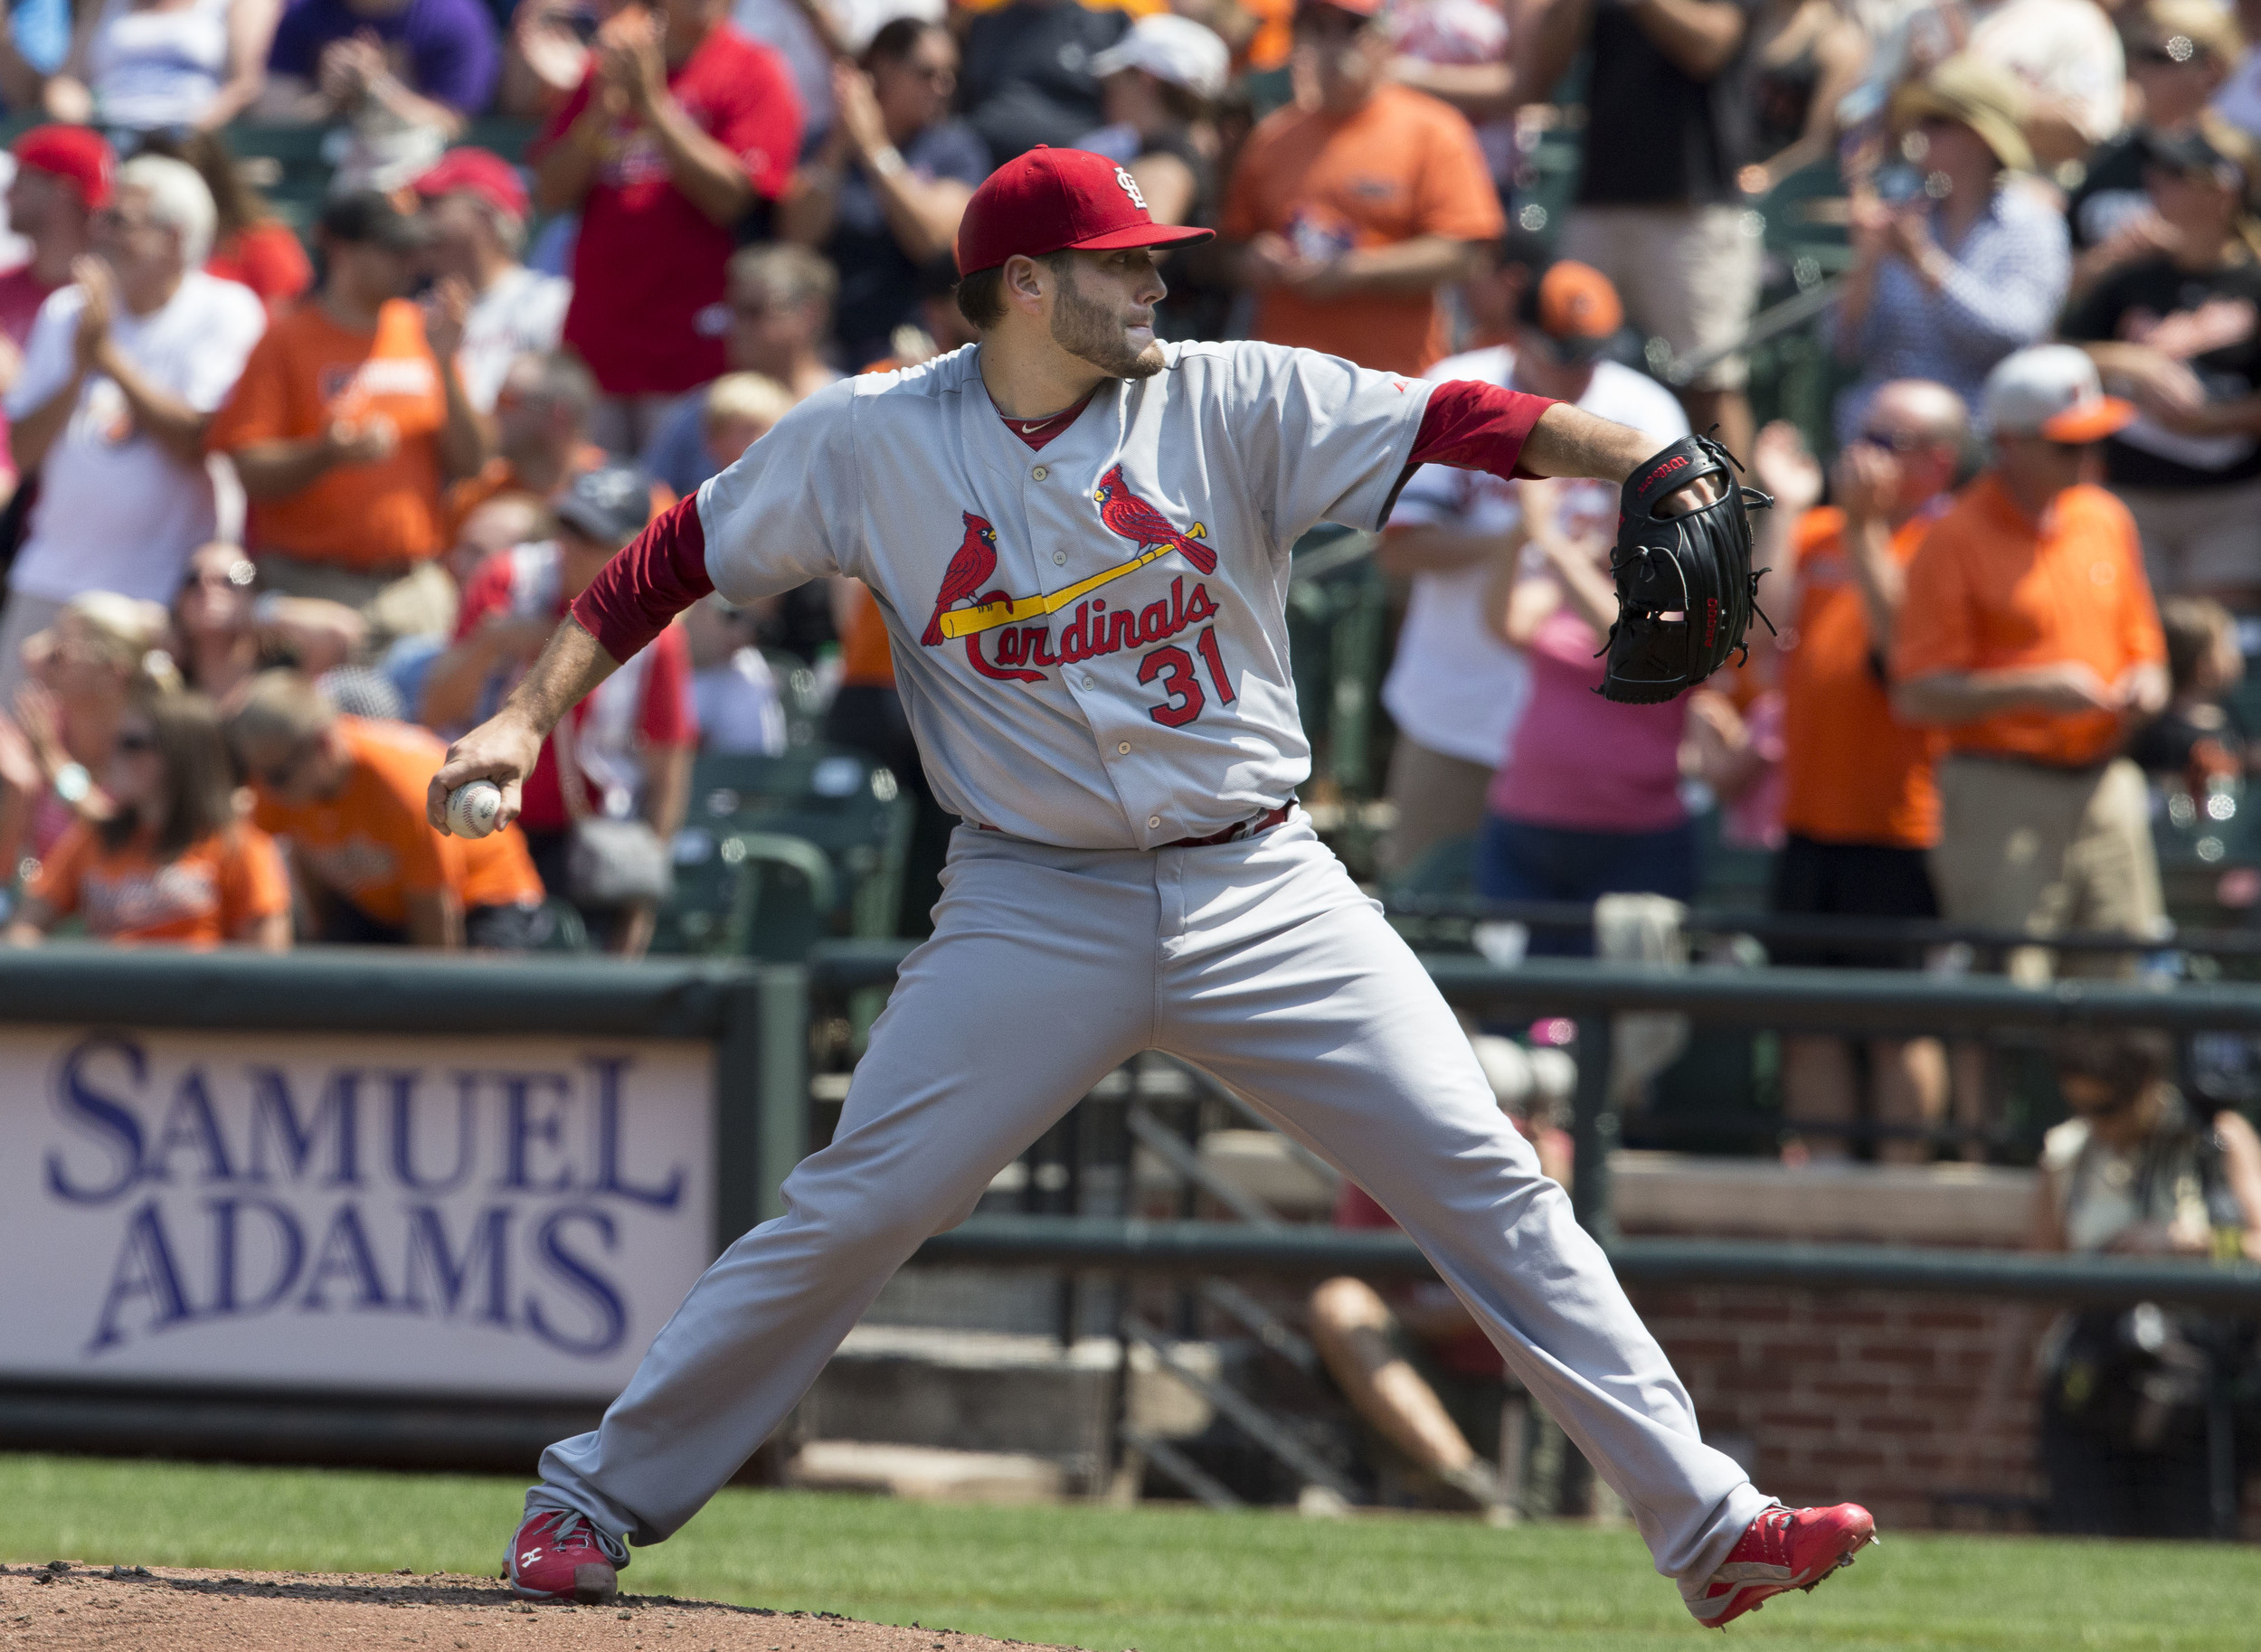 Lance Lynn, 2014. Many thanks to Keith Allison for using the Creative Commons license on Flickr and so making indie baseball blogs' Facebook shares look much better than they otherwise would. (CC BY-SA)